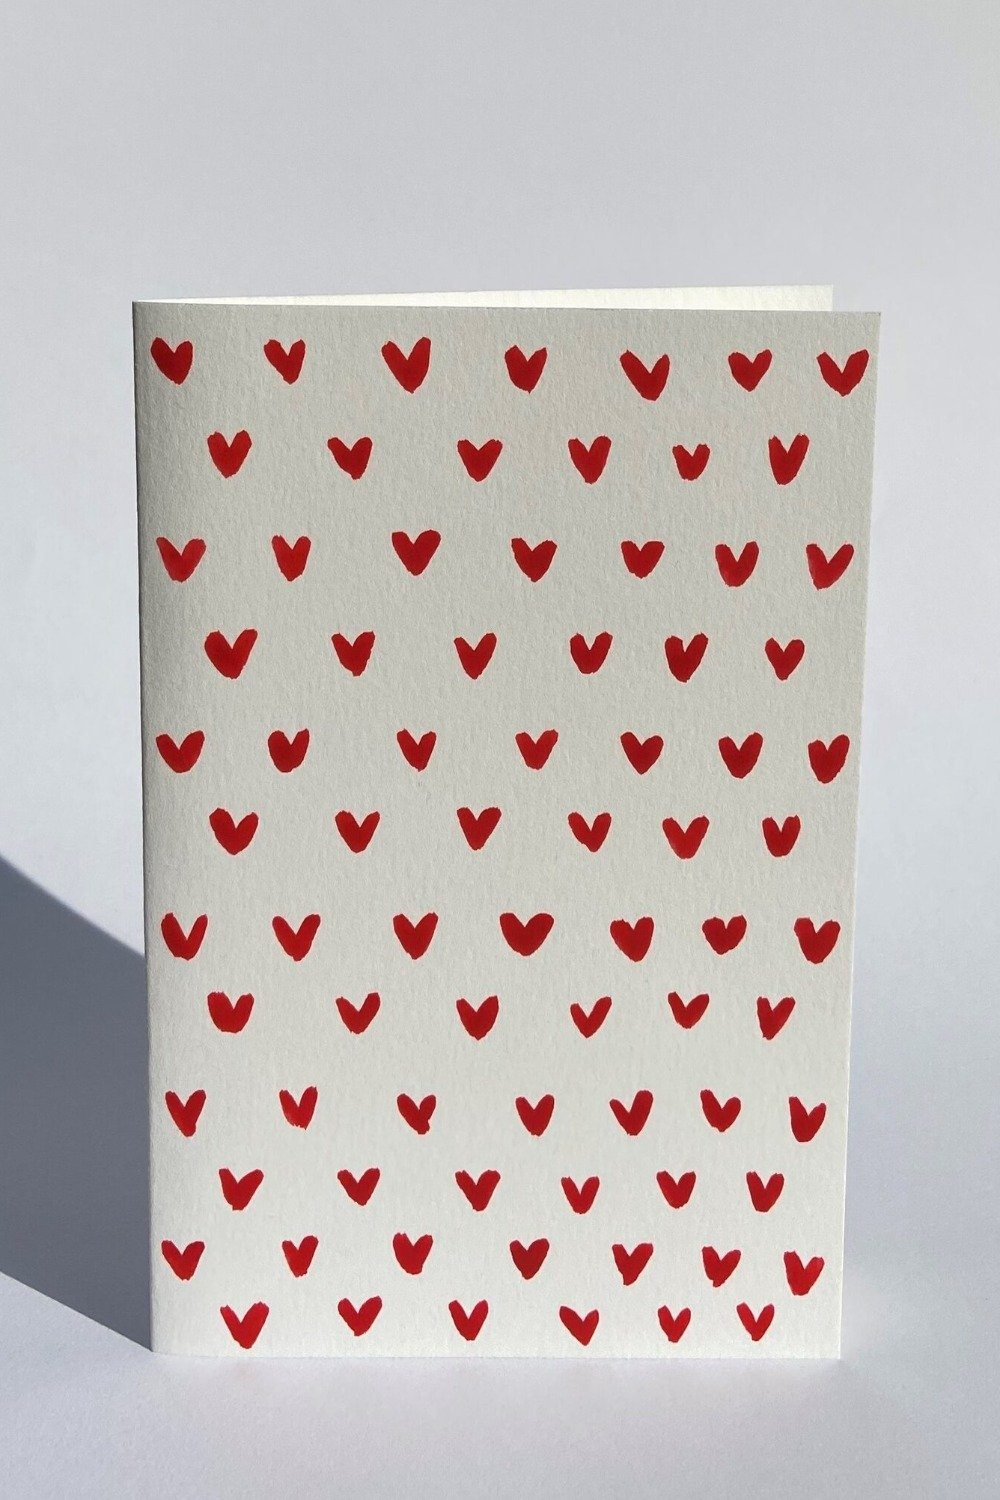 Hand Made Little Hearts Valentine's Card Gifts & Stationery Heather Evelyn